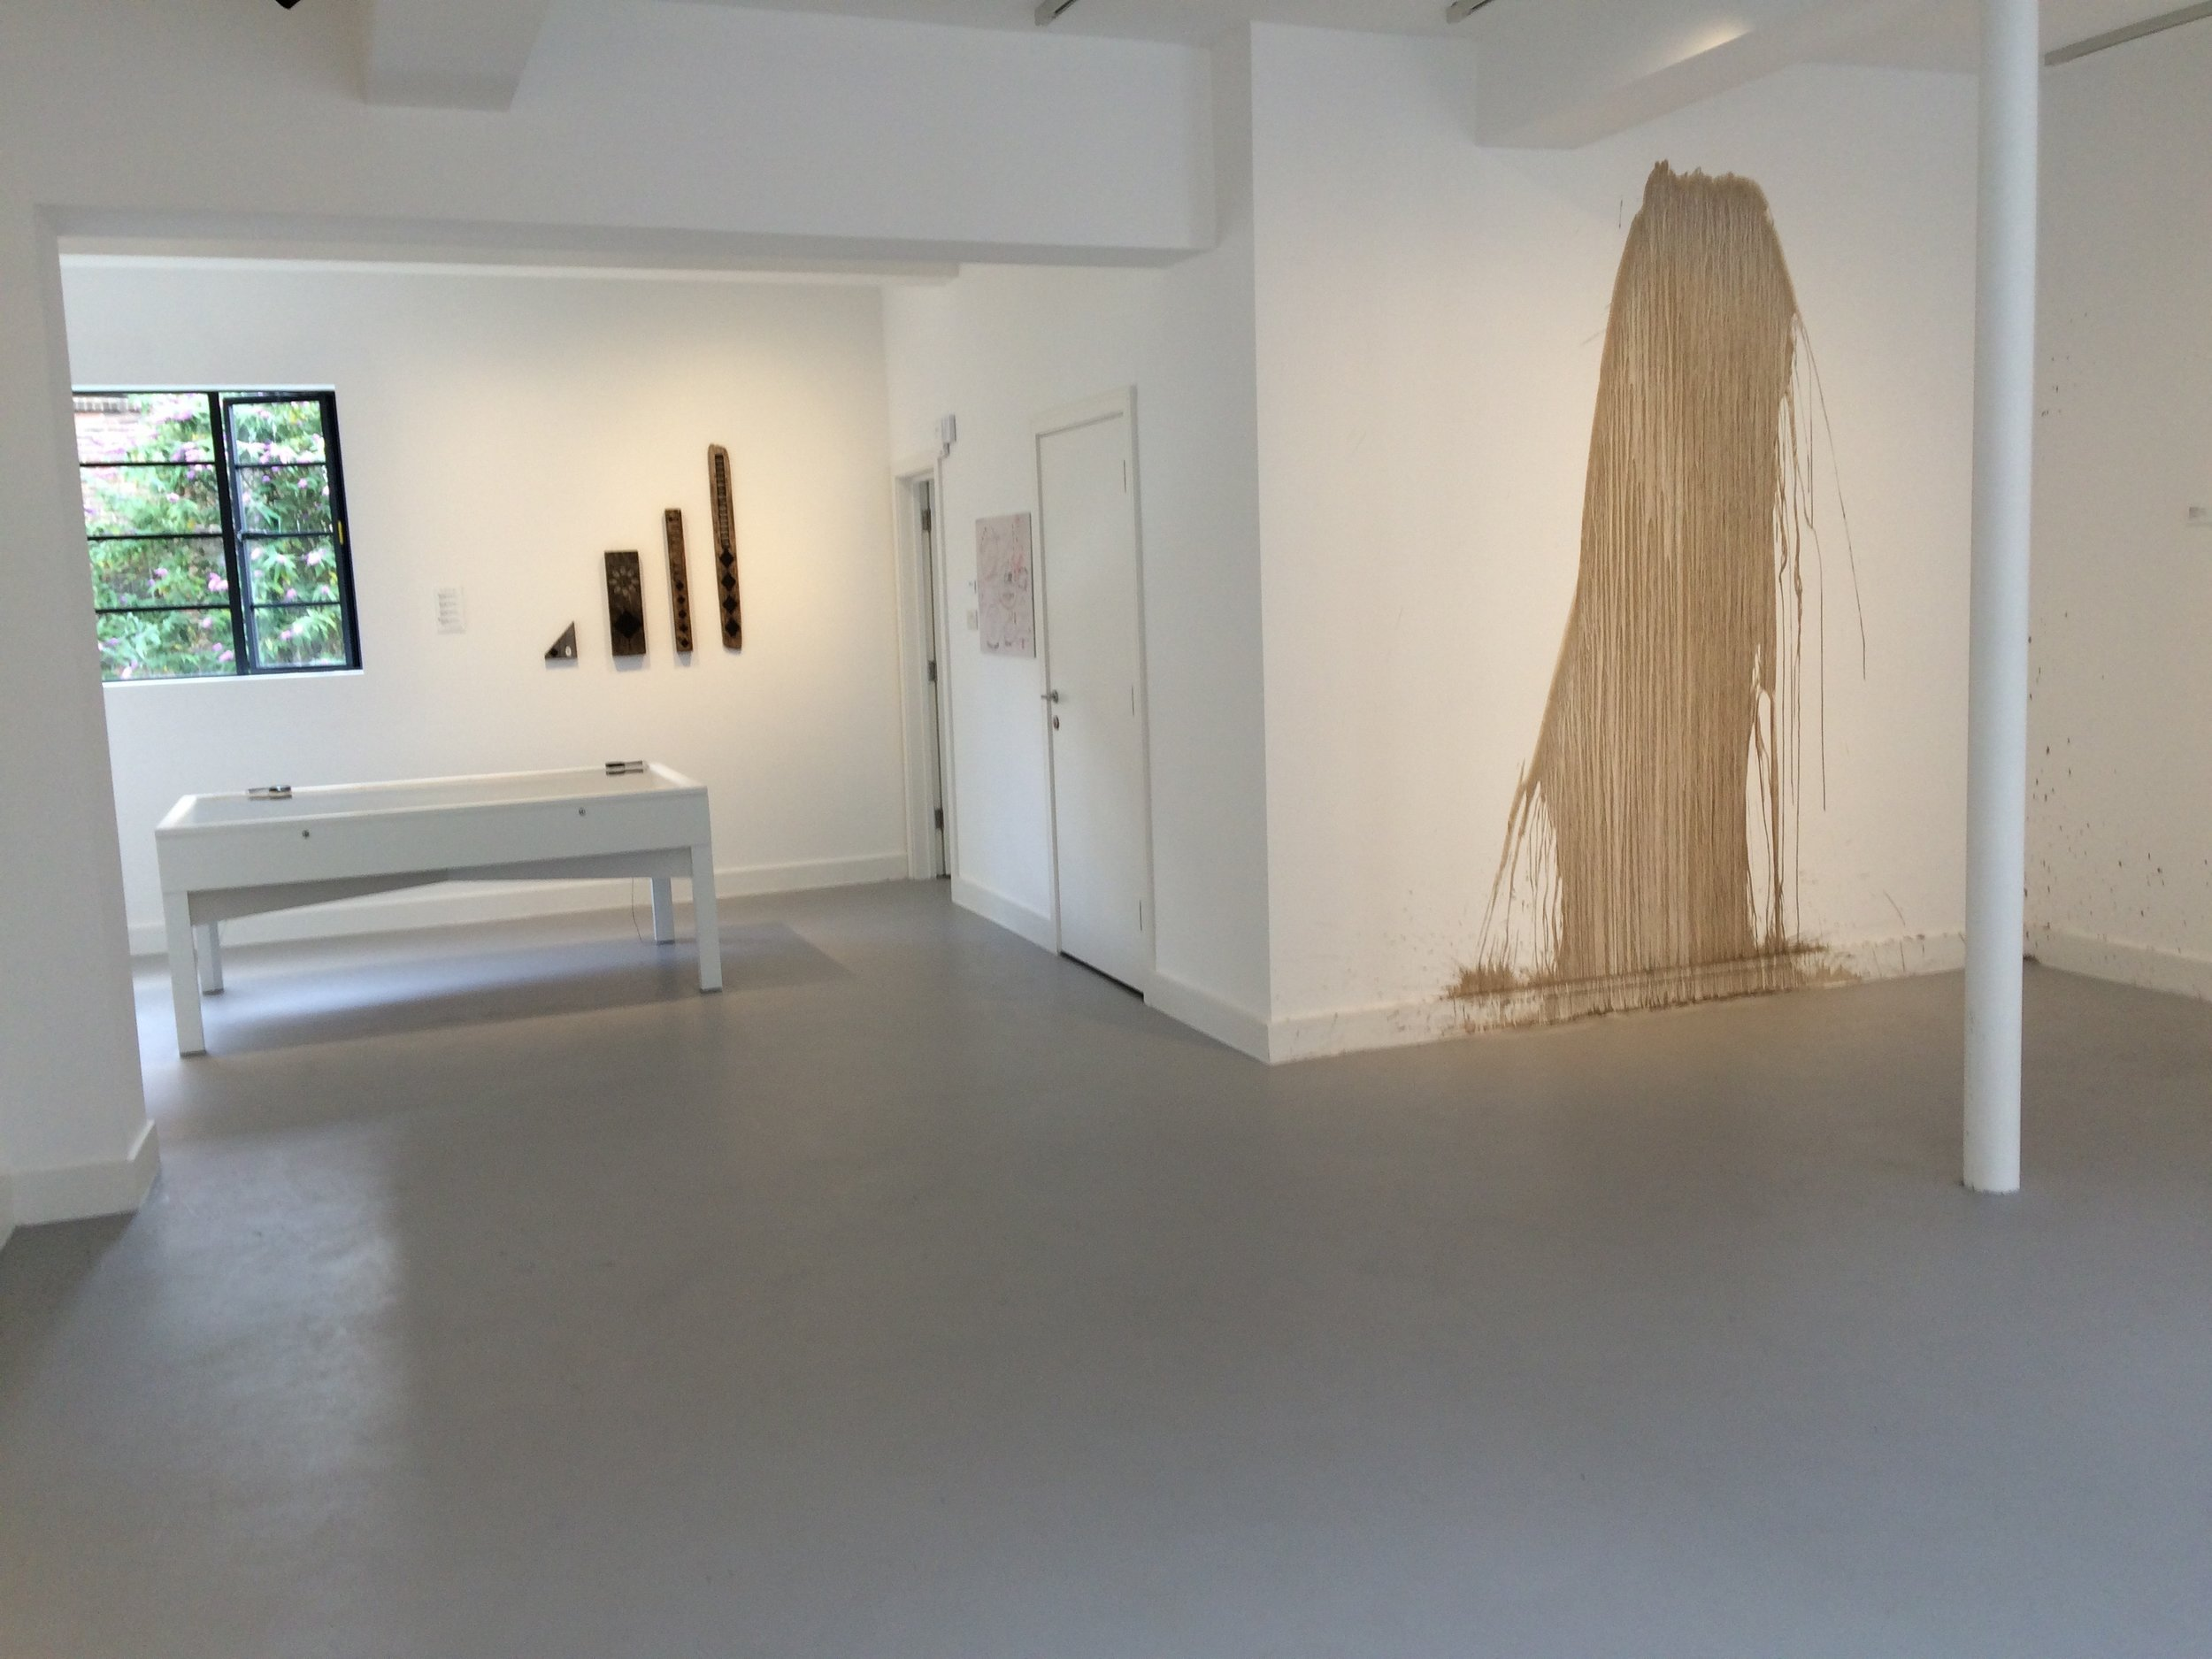 Richard Long, Great Ouse Mud Drawing 2016 in situ, GroundWork Gallery, Sunlight and Gravity.  Photo by Steve Jackson